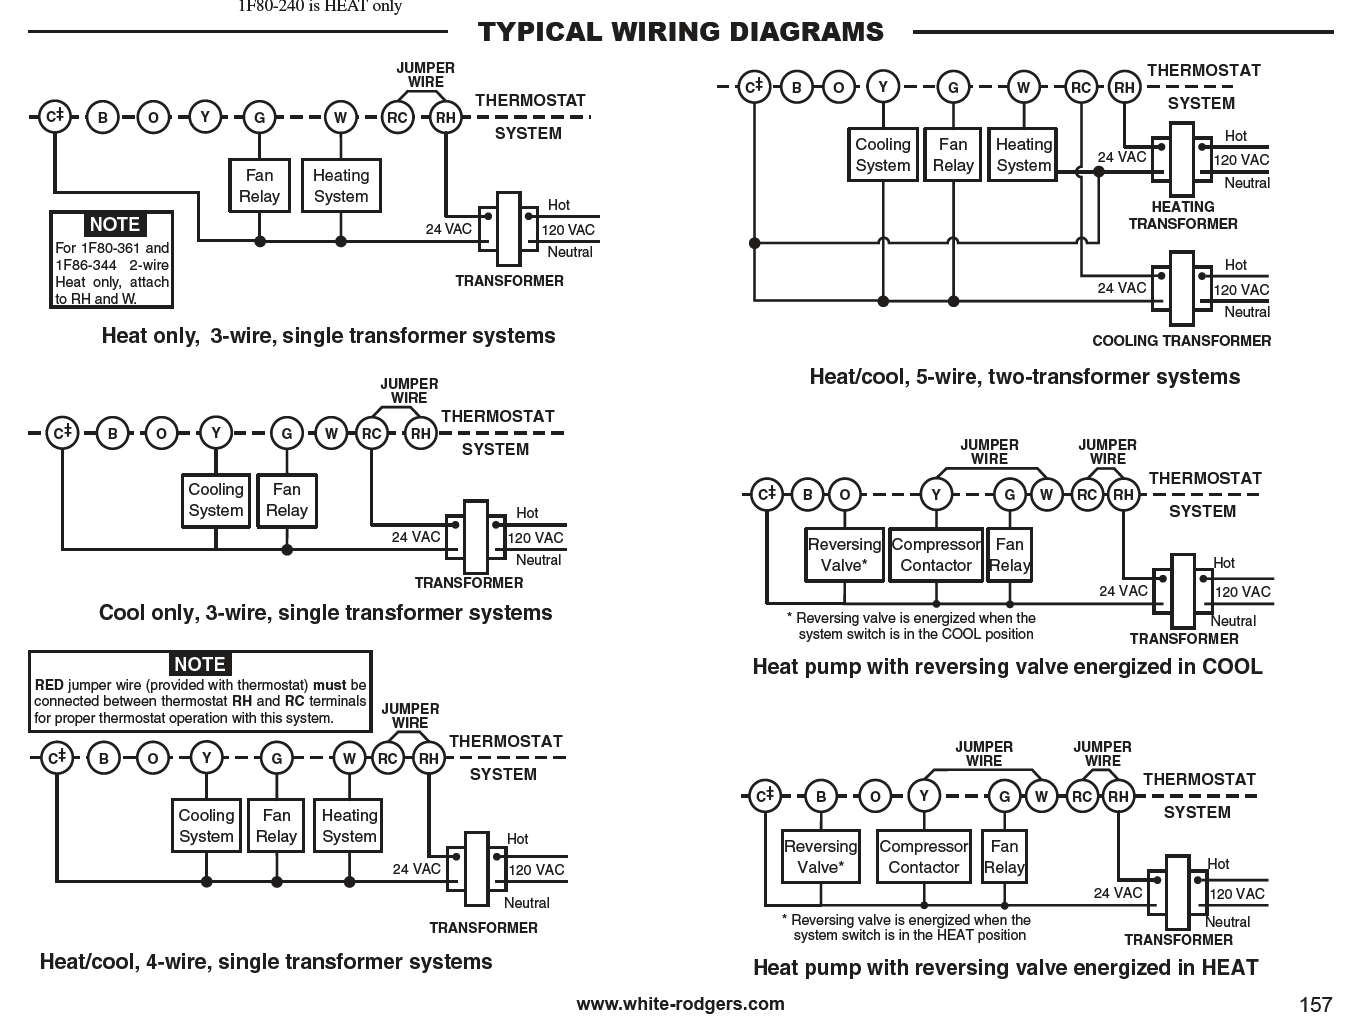 How wire a white rodgers room thermostat white rodgers thermostat emerson white rodgers 1f80 series thermostats typical wiring diagrams at inspectapedia cited in detail cheapraybanclubmaster Images